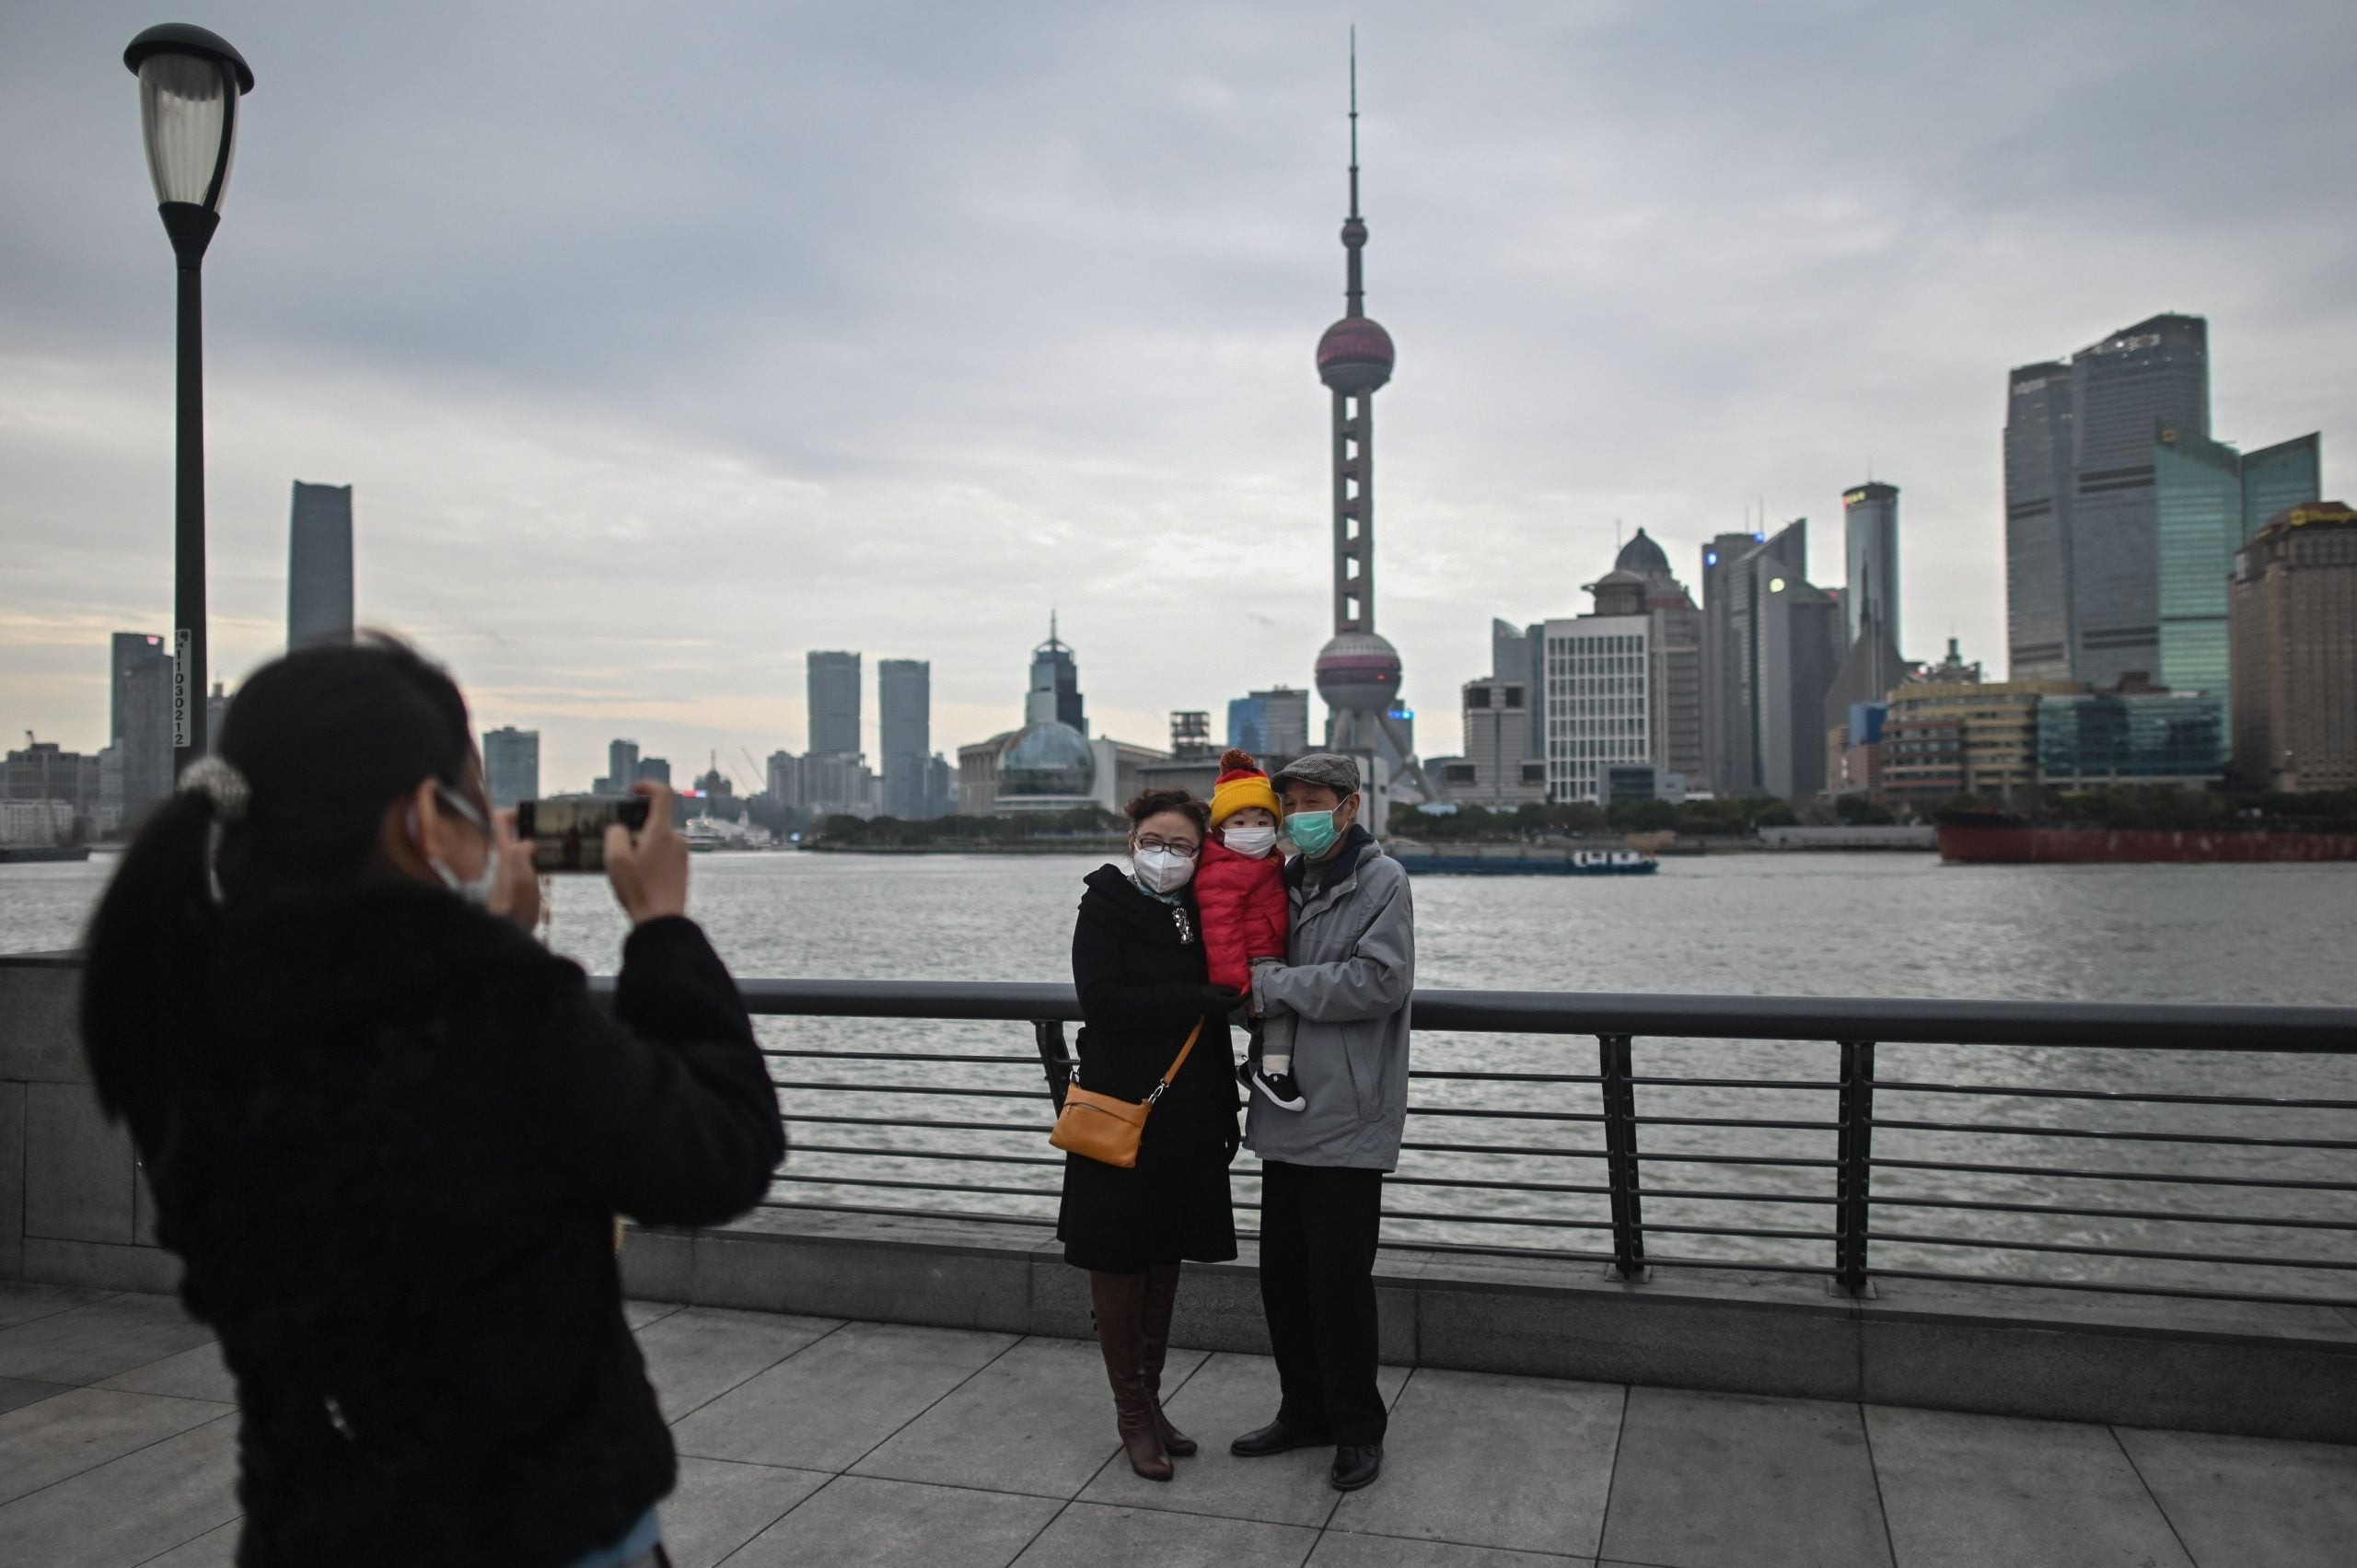 Postcards from an infected world: Life is returning to normal in China, but the costs are yet to be seen